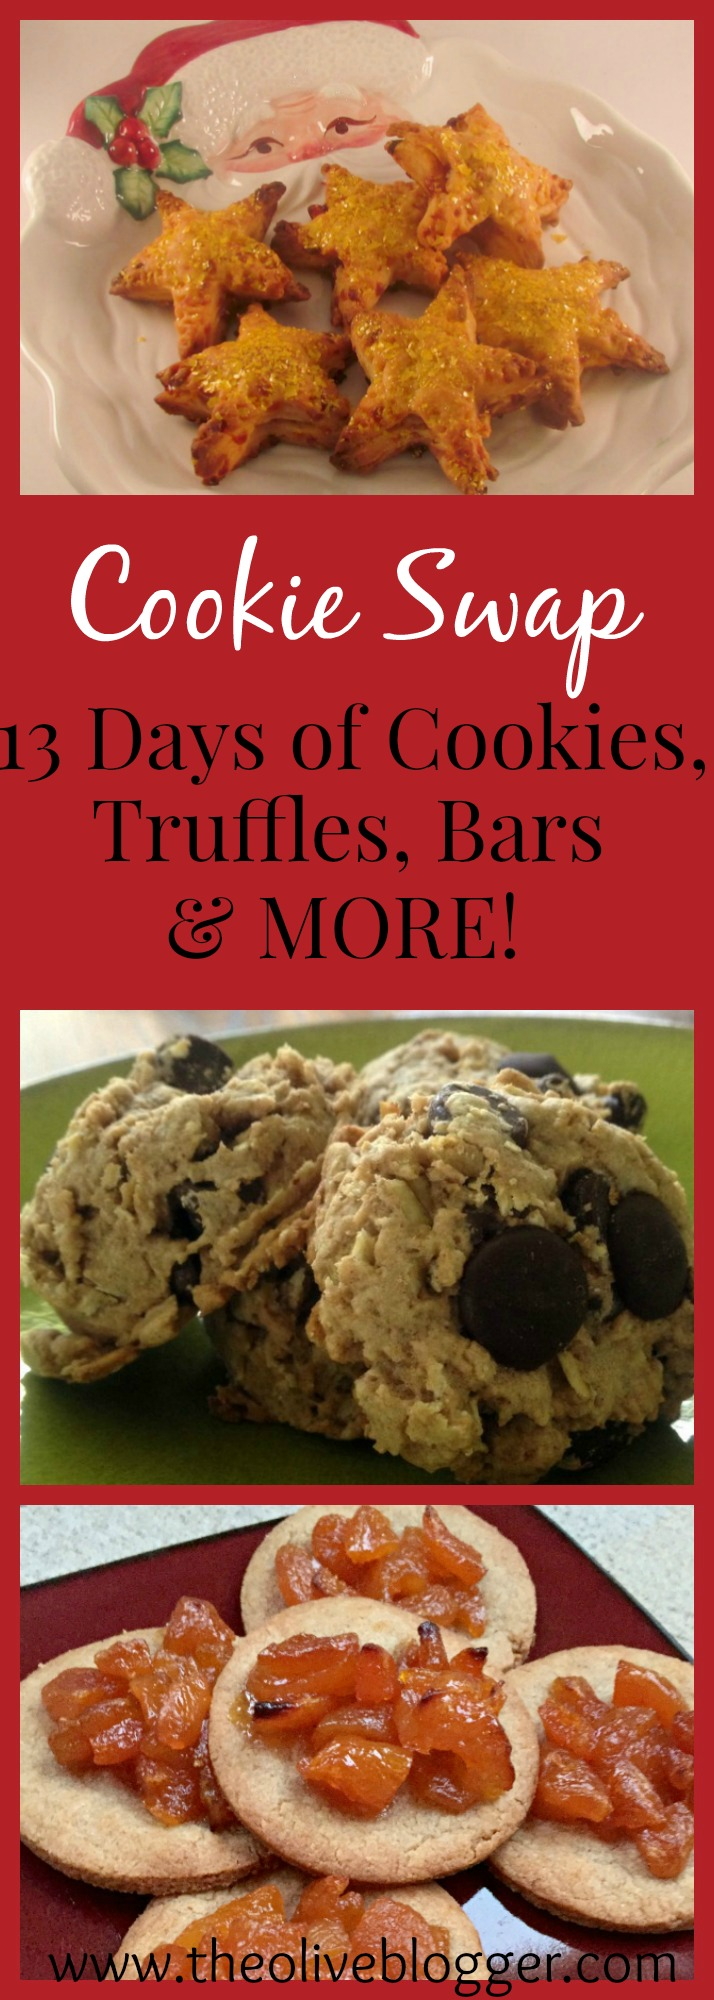 Our Annual Baking Frenzy is back! Cookie Recipes, Fudge, Bars, Truffles and more...there is a recipe for everyone!